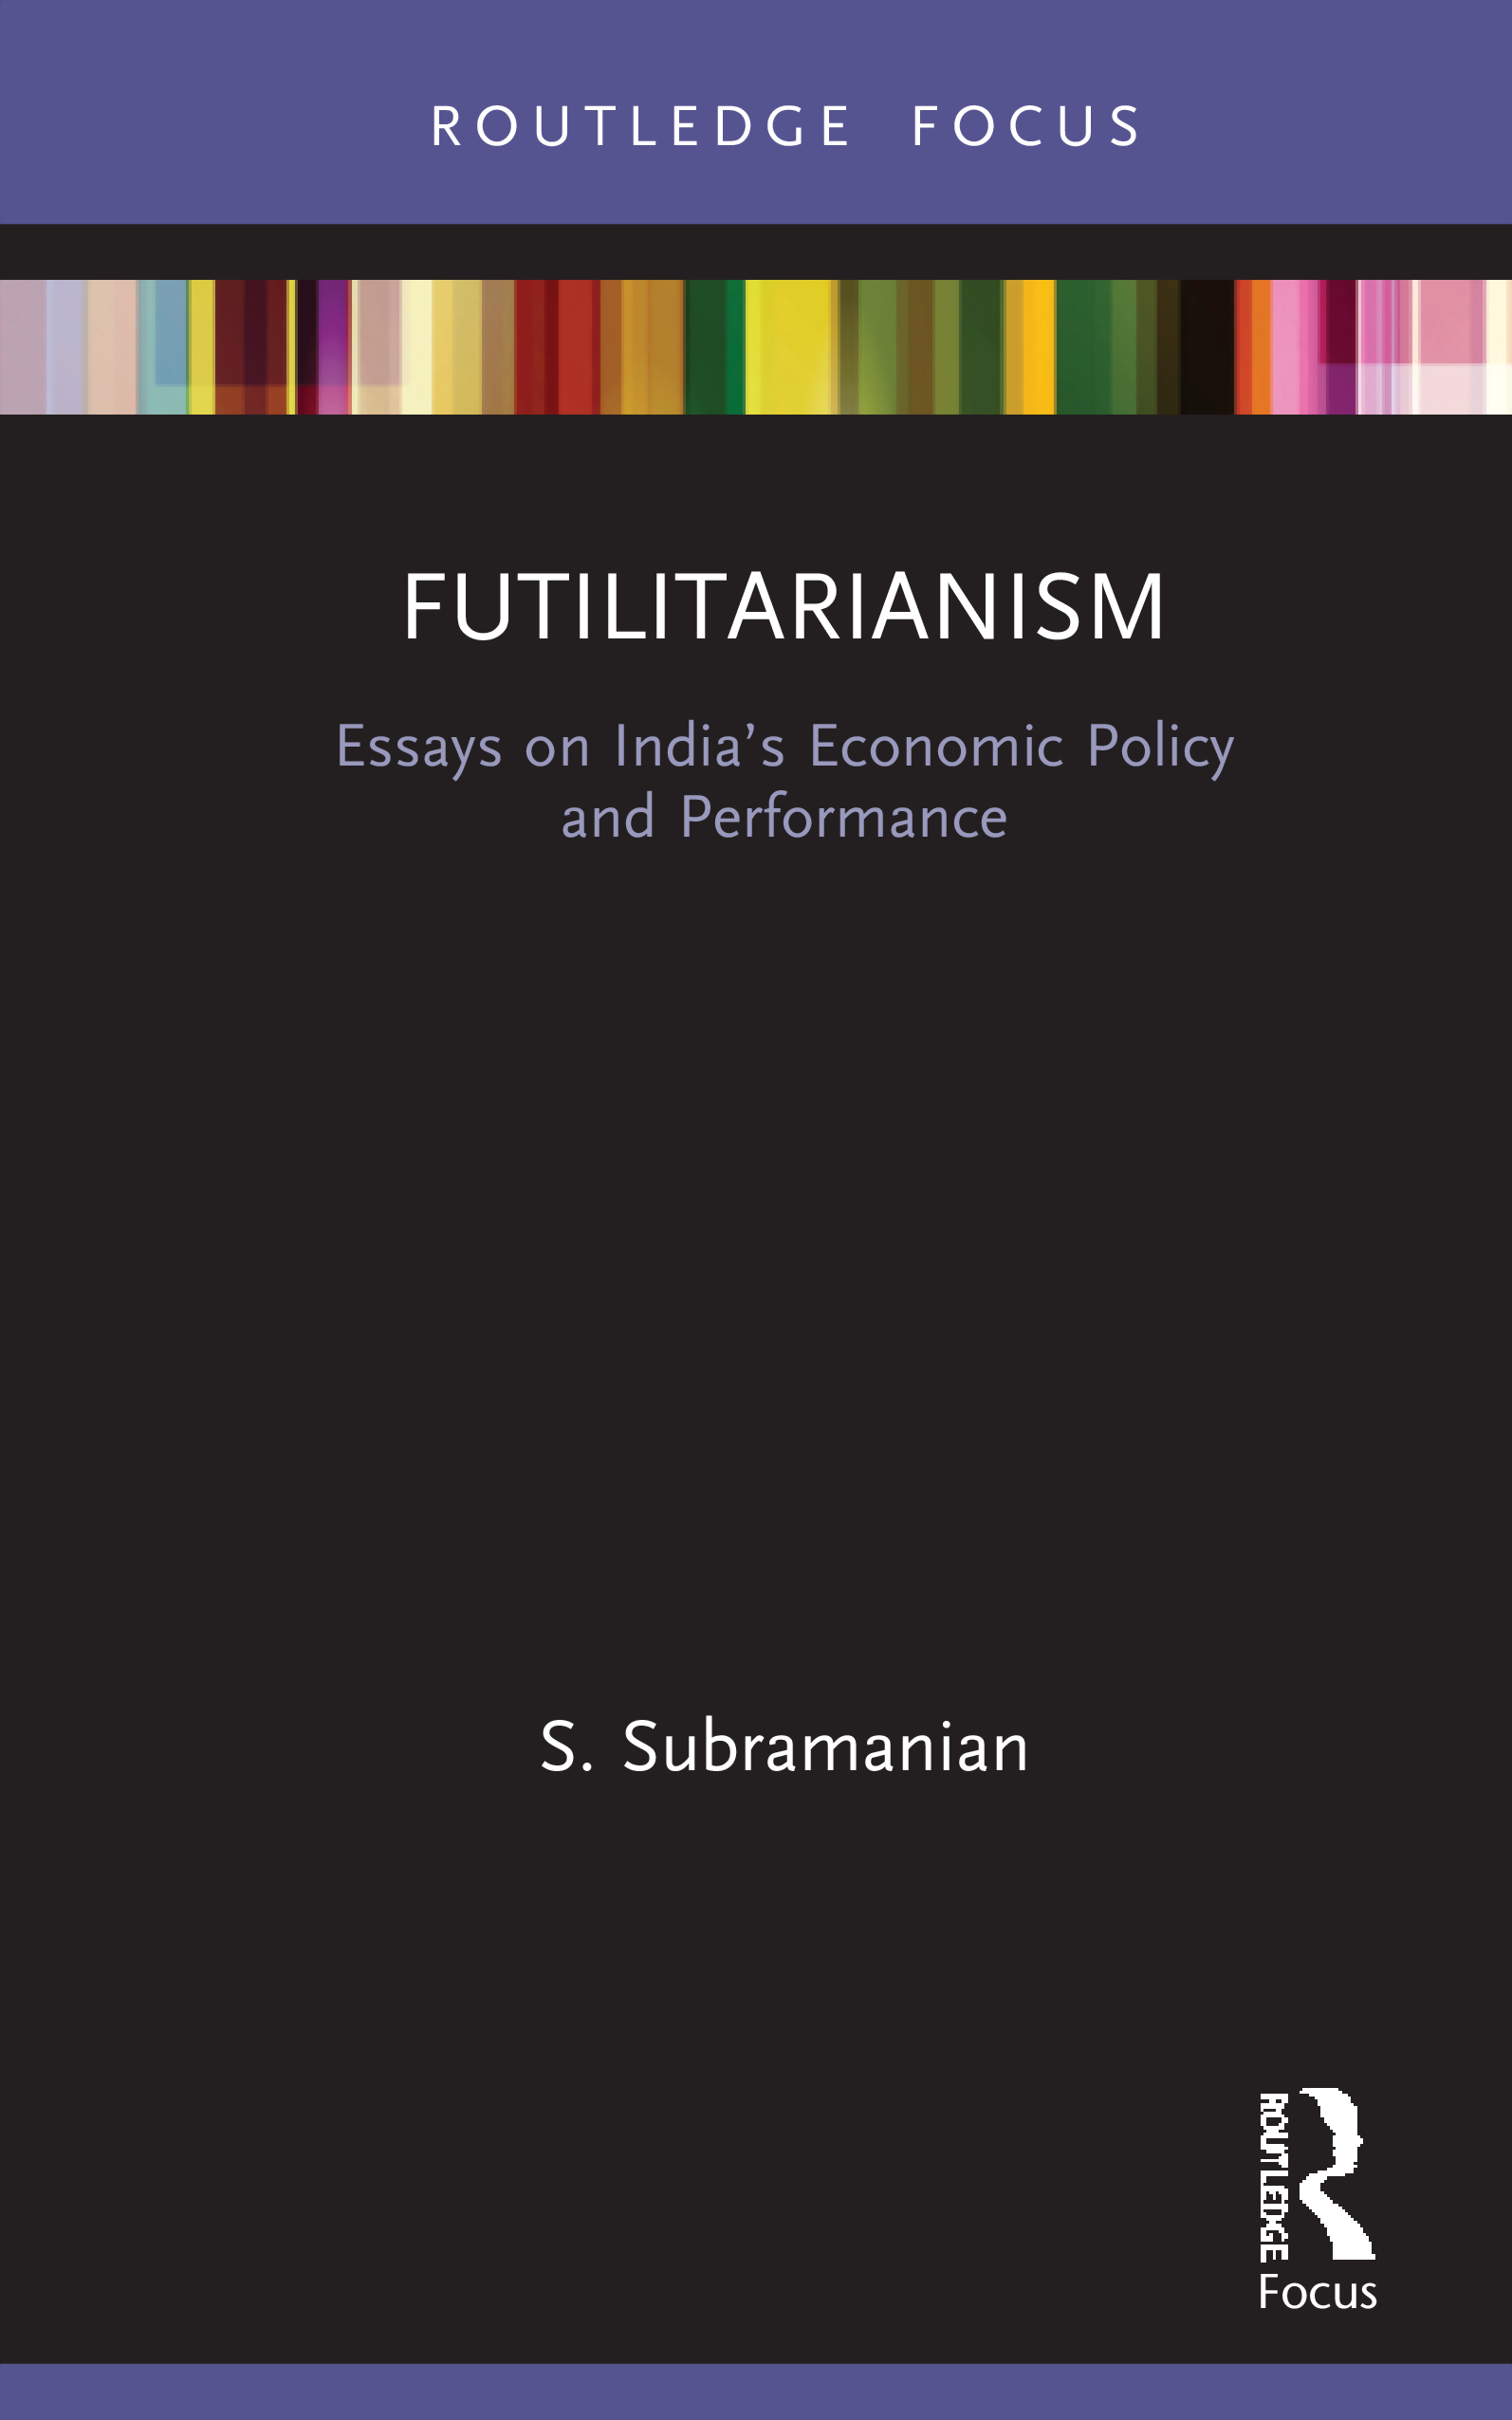 Futilitarianism: Essays on India's Economic Policy and Performance book cover